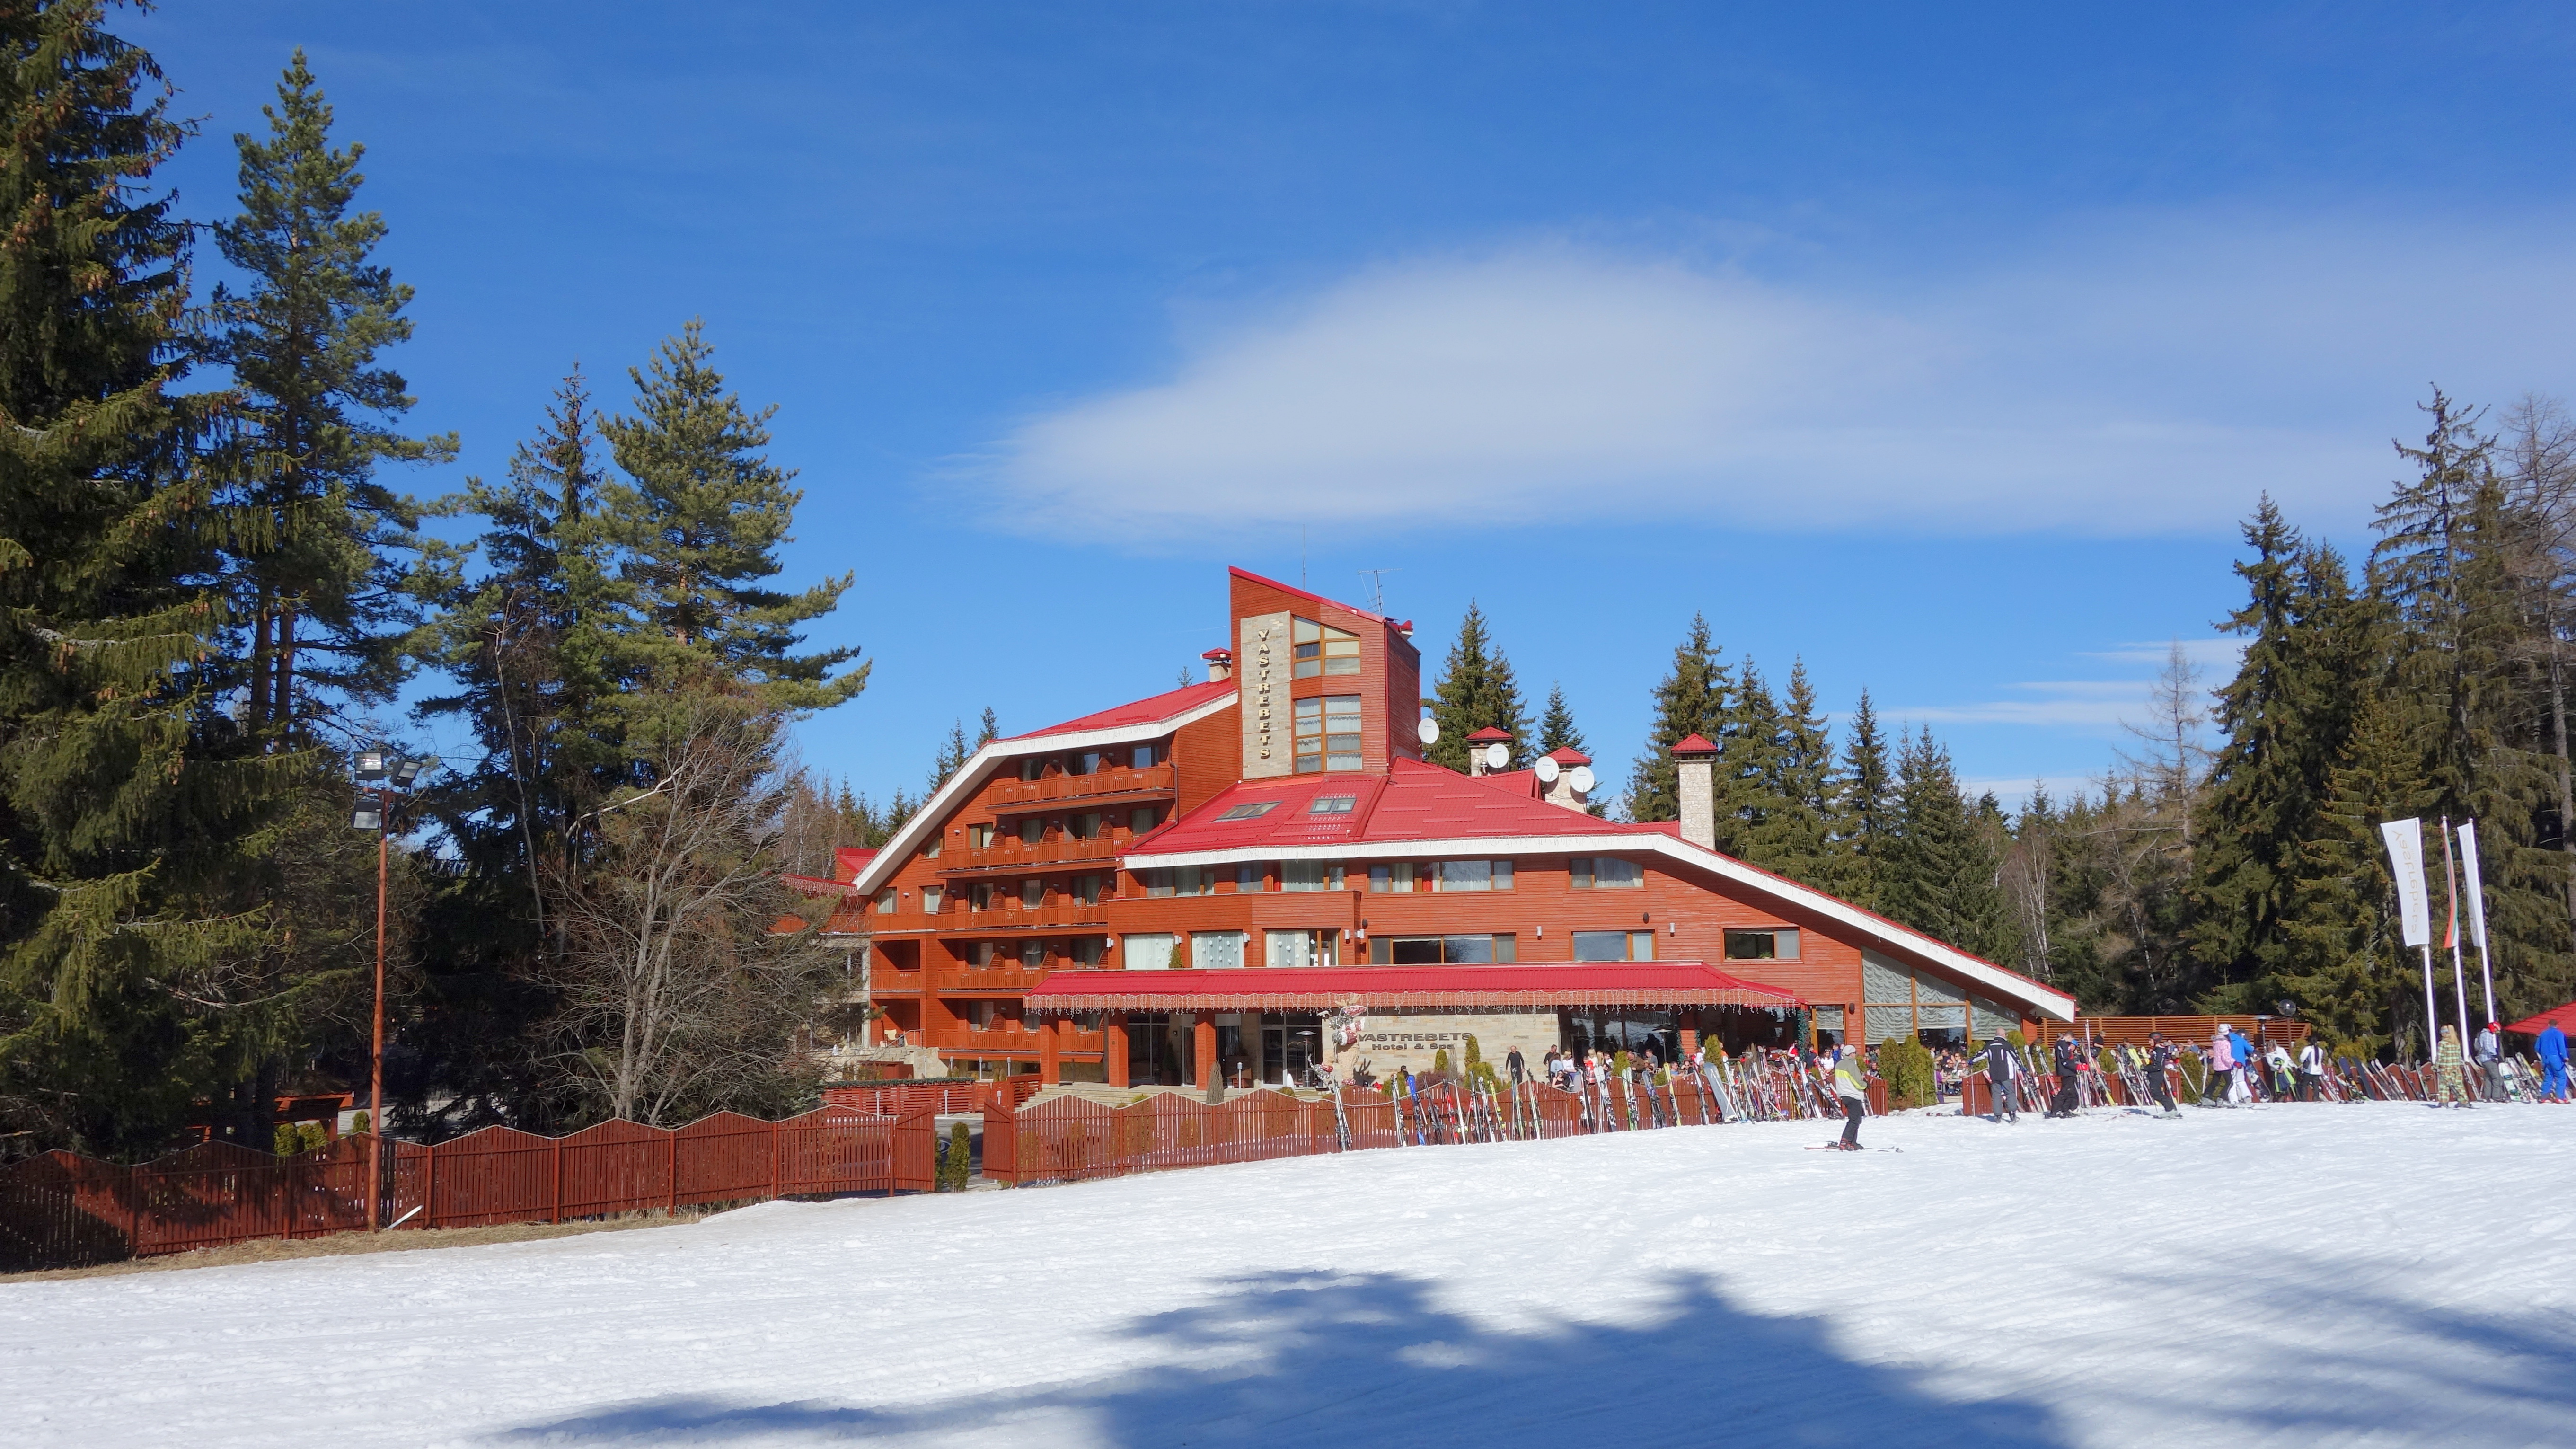 Yastrebets hotel on a sunny day, Borovets, Bulgaria